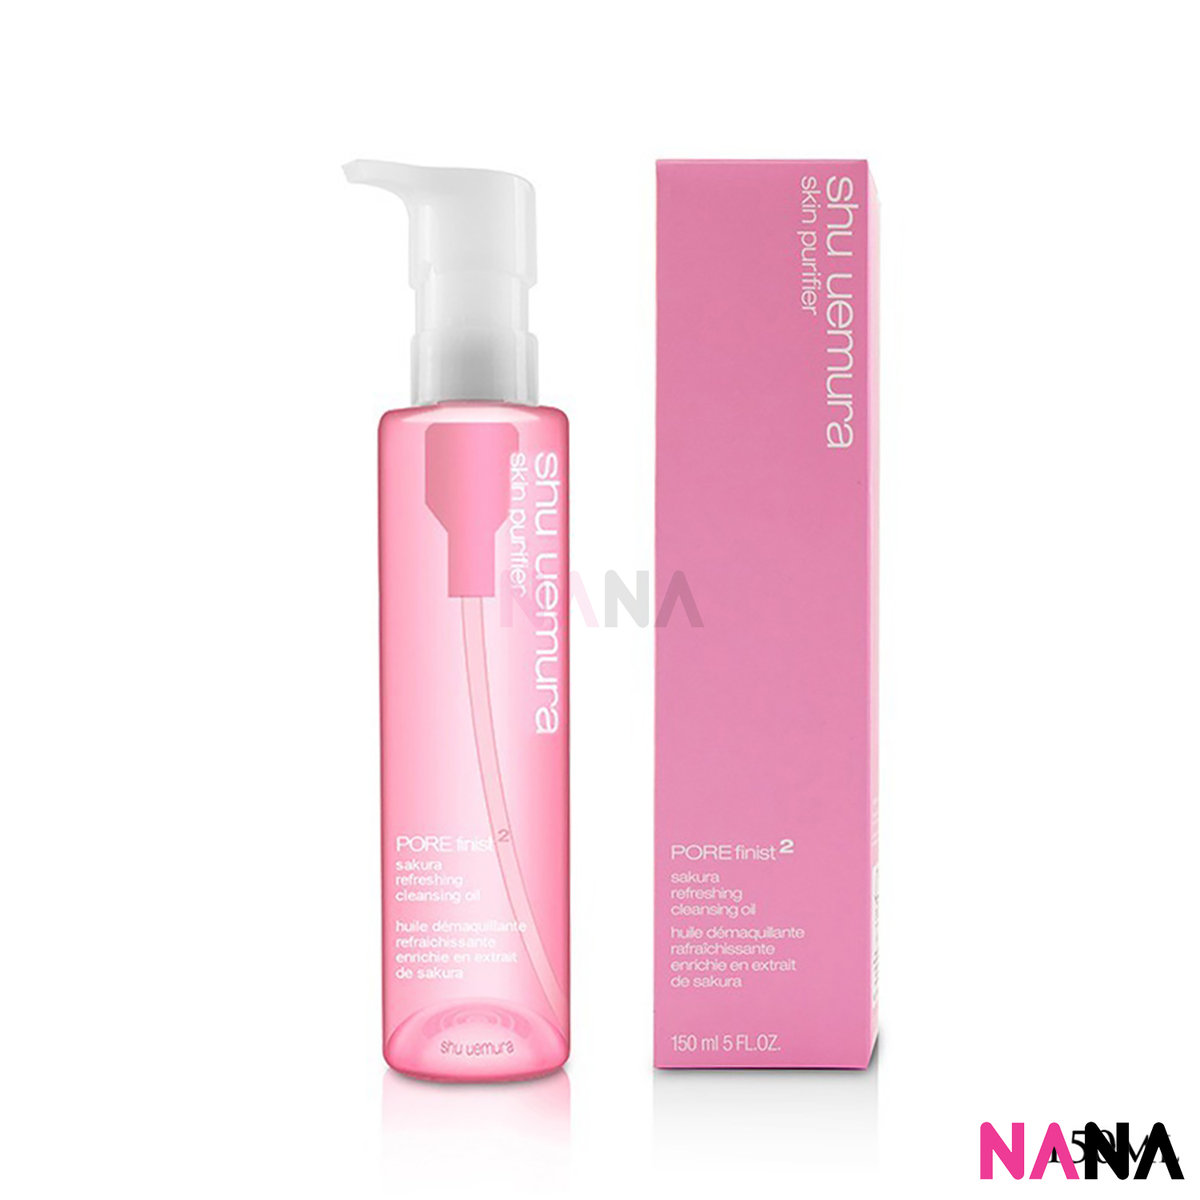 Biore Makeup Remover Launch Source · Shu Uemura Skin Purifier Porefinist Sakura Refreshing Dan Biore Make Up Remover Cleansing Oil Sheet Refill